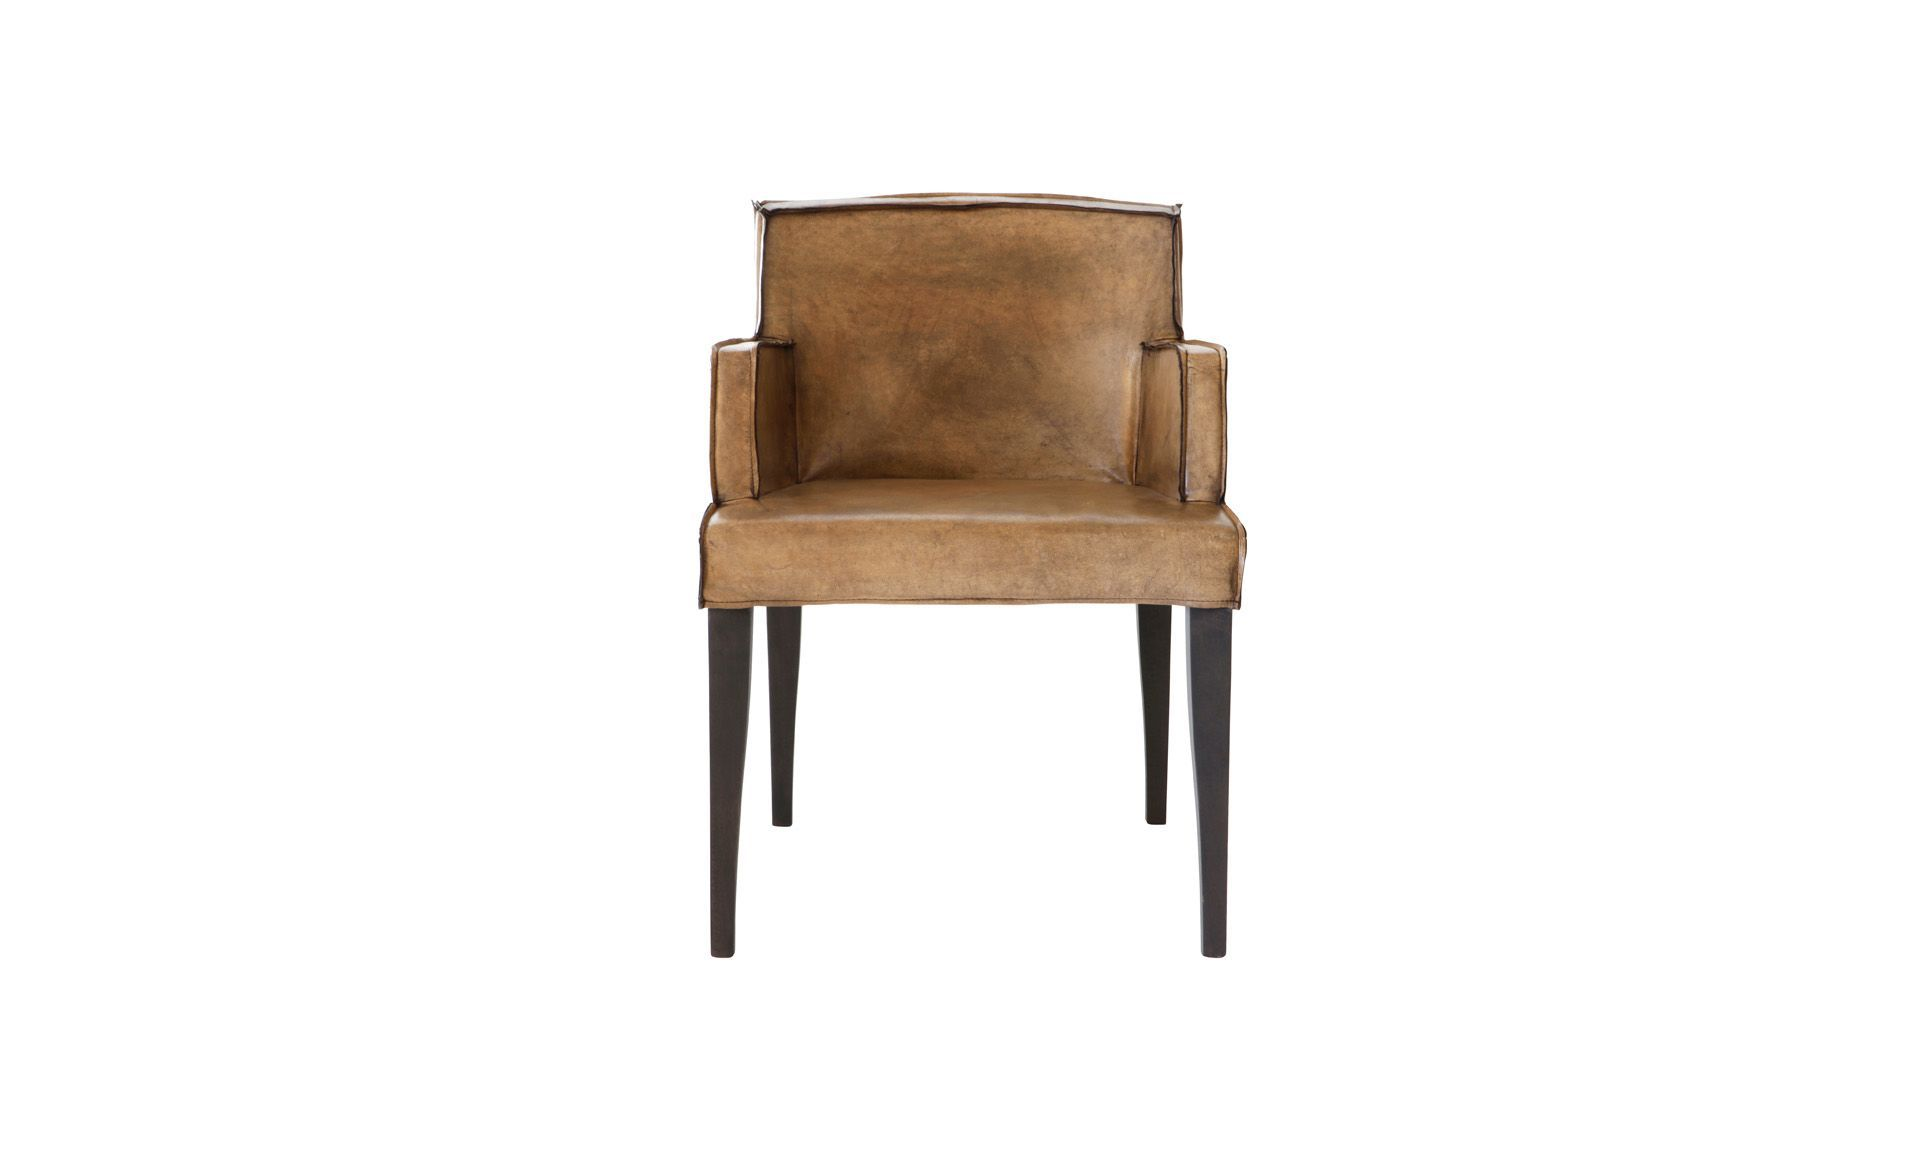 Monza Dining Chair For Sale Dining Chairs For Sale Dining